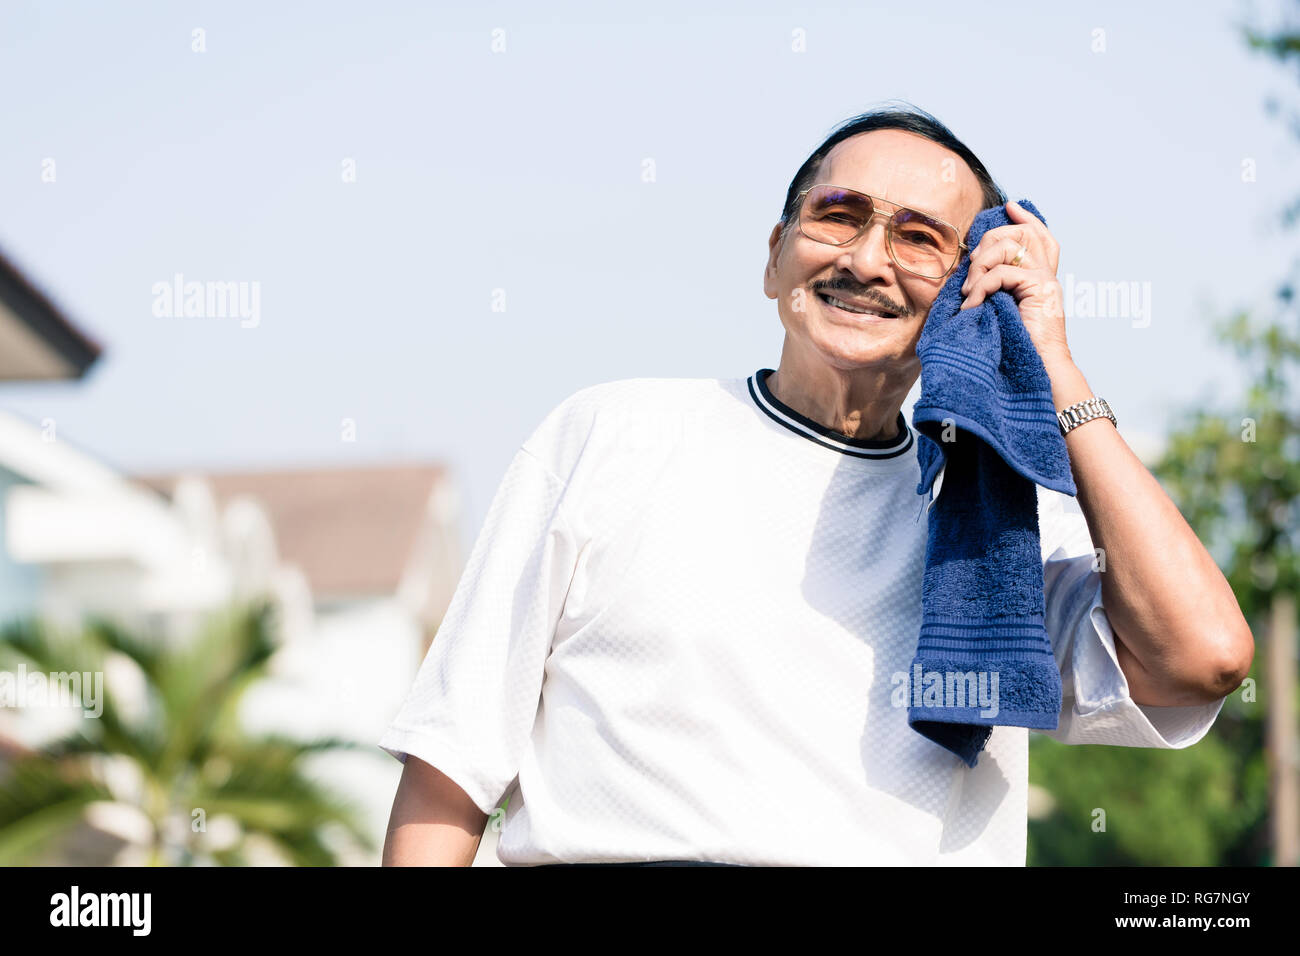 An elderly man wiping his sweat with napkin - Stock Image